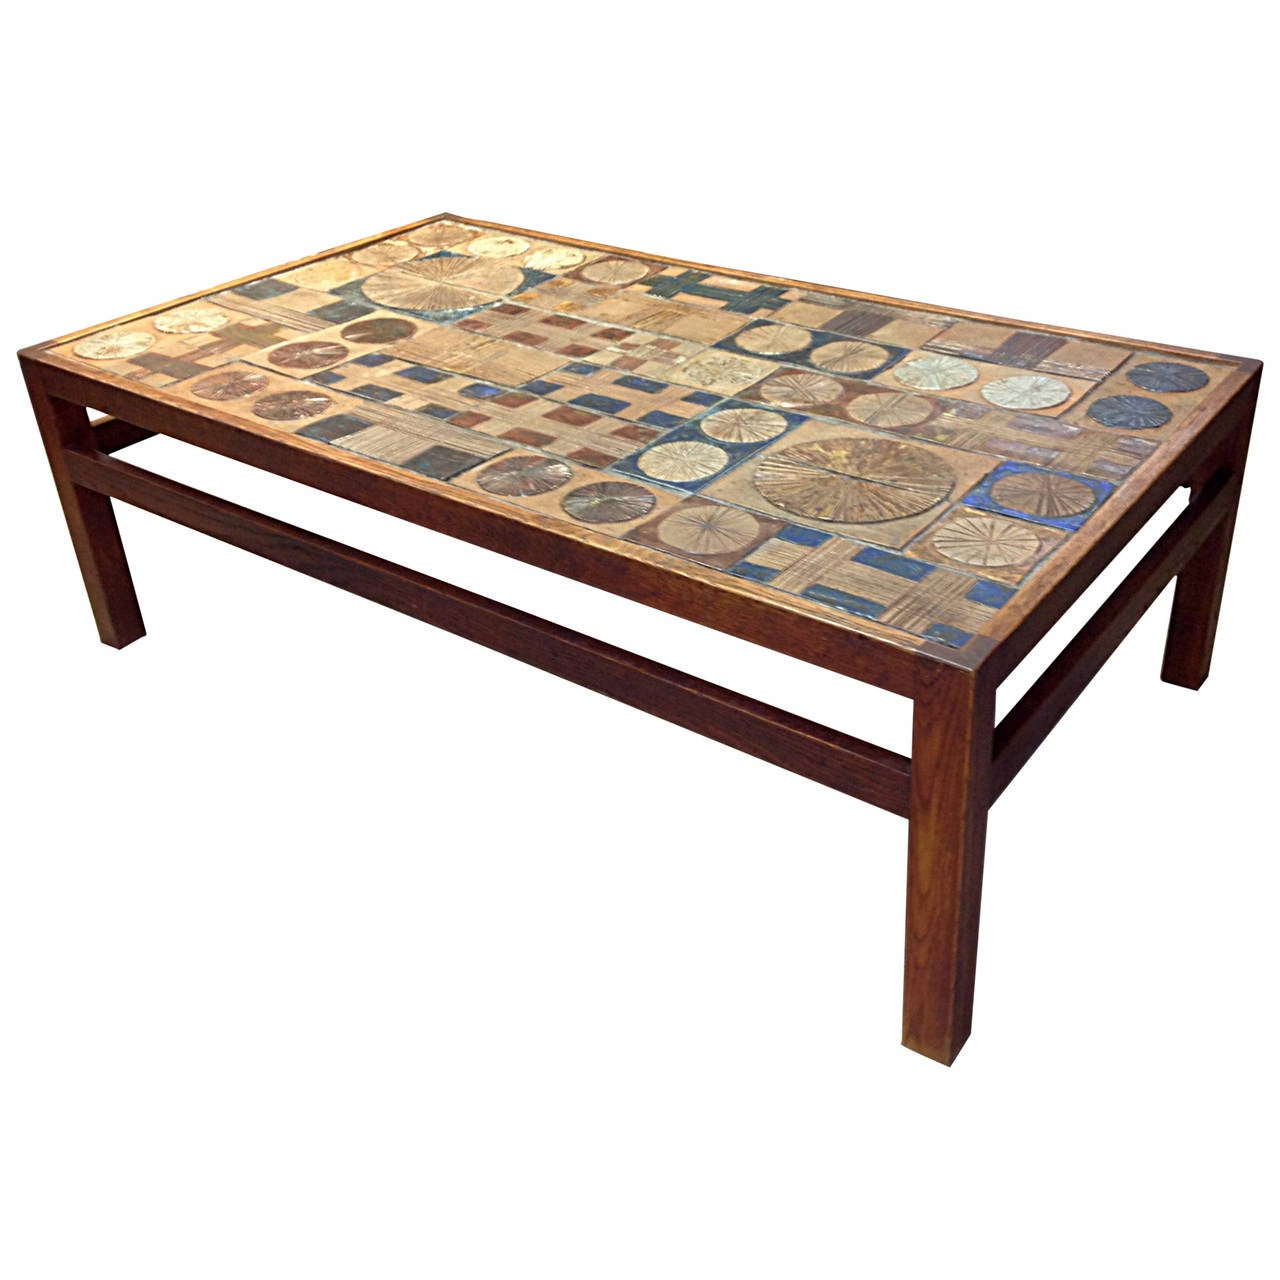 Tue Poulsen Tile And Willy Beck Cocktail Table At 1stdibs